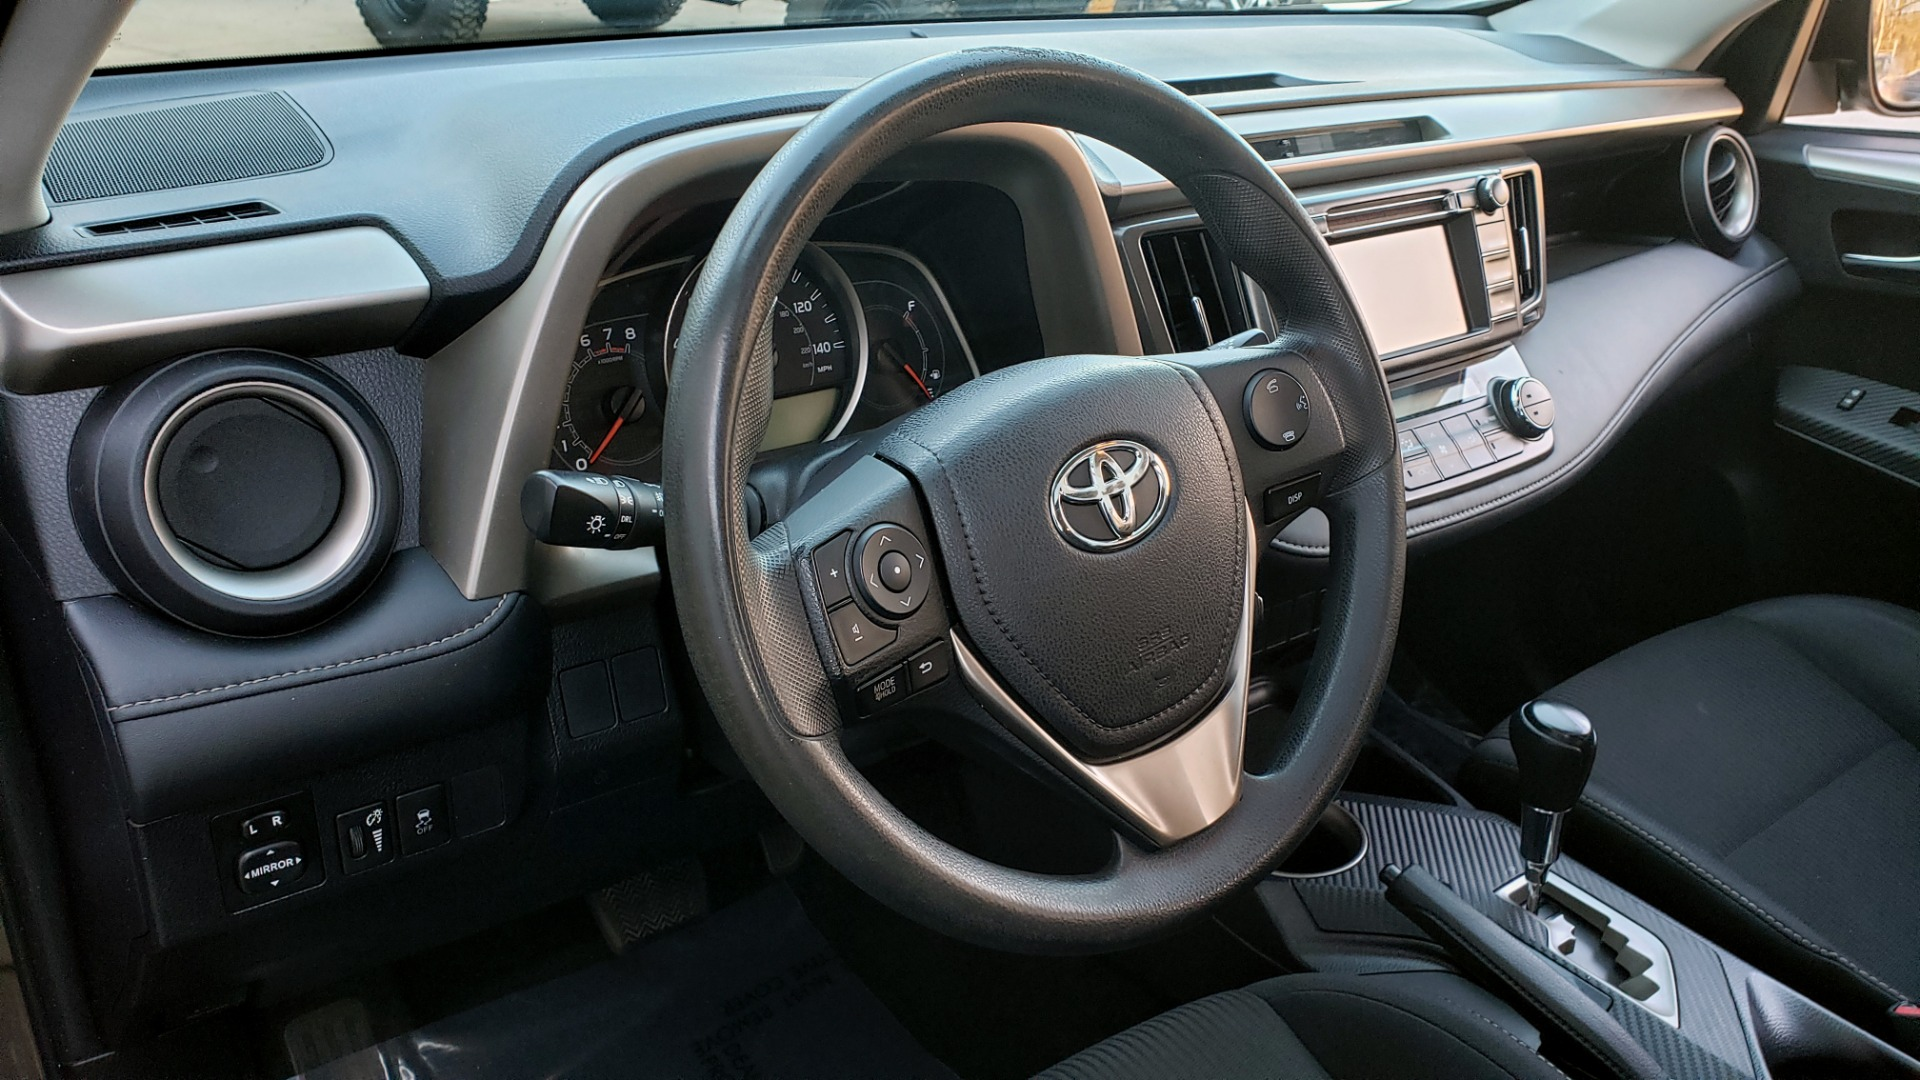 Used 2014 Toyota RAV4 XLE / FWD / 2.5L 4-CYL / 6-SPD AUTO / 17IN ALLOY / REARVIEW for sale $13,695 at Formula Imports in Charlotte NC 28227 67